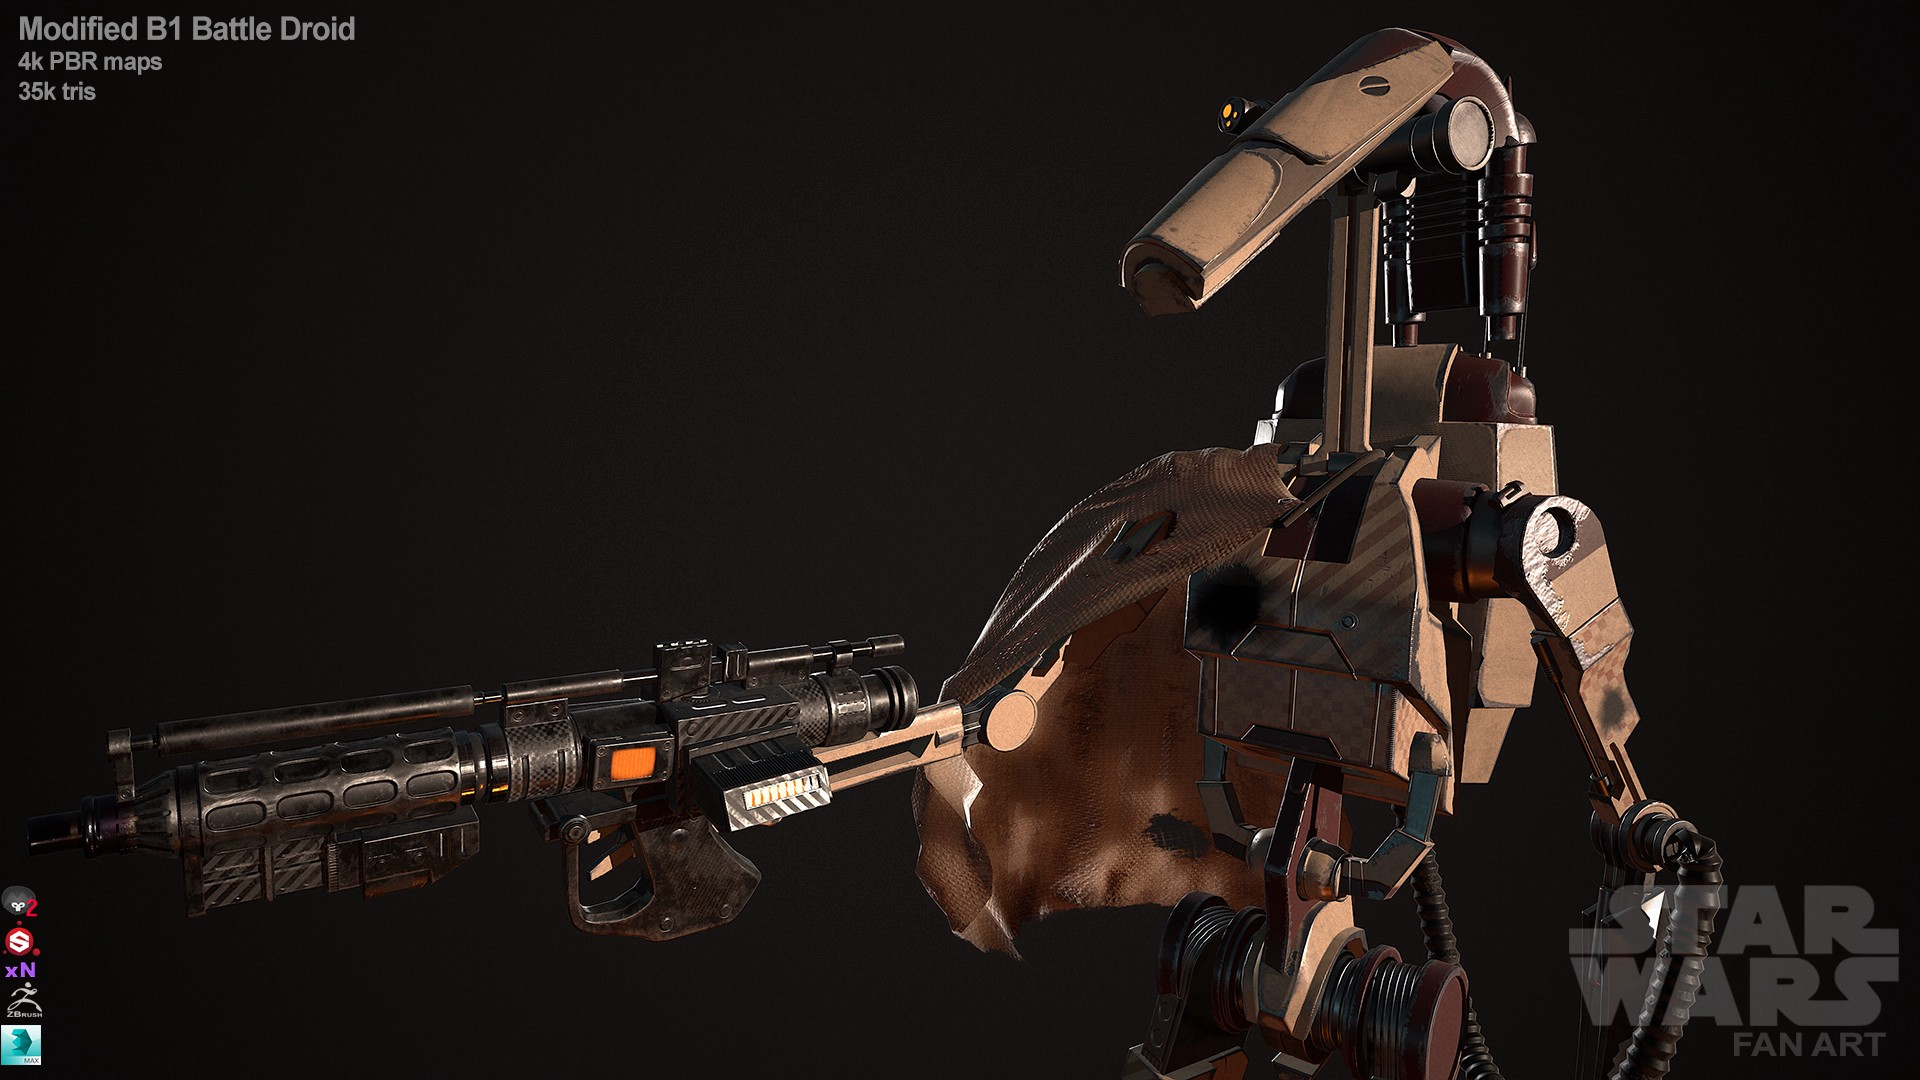 Good Morning My Thoughts On B1 Battle Droid Units By Simp Mind Fed Duh Medium